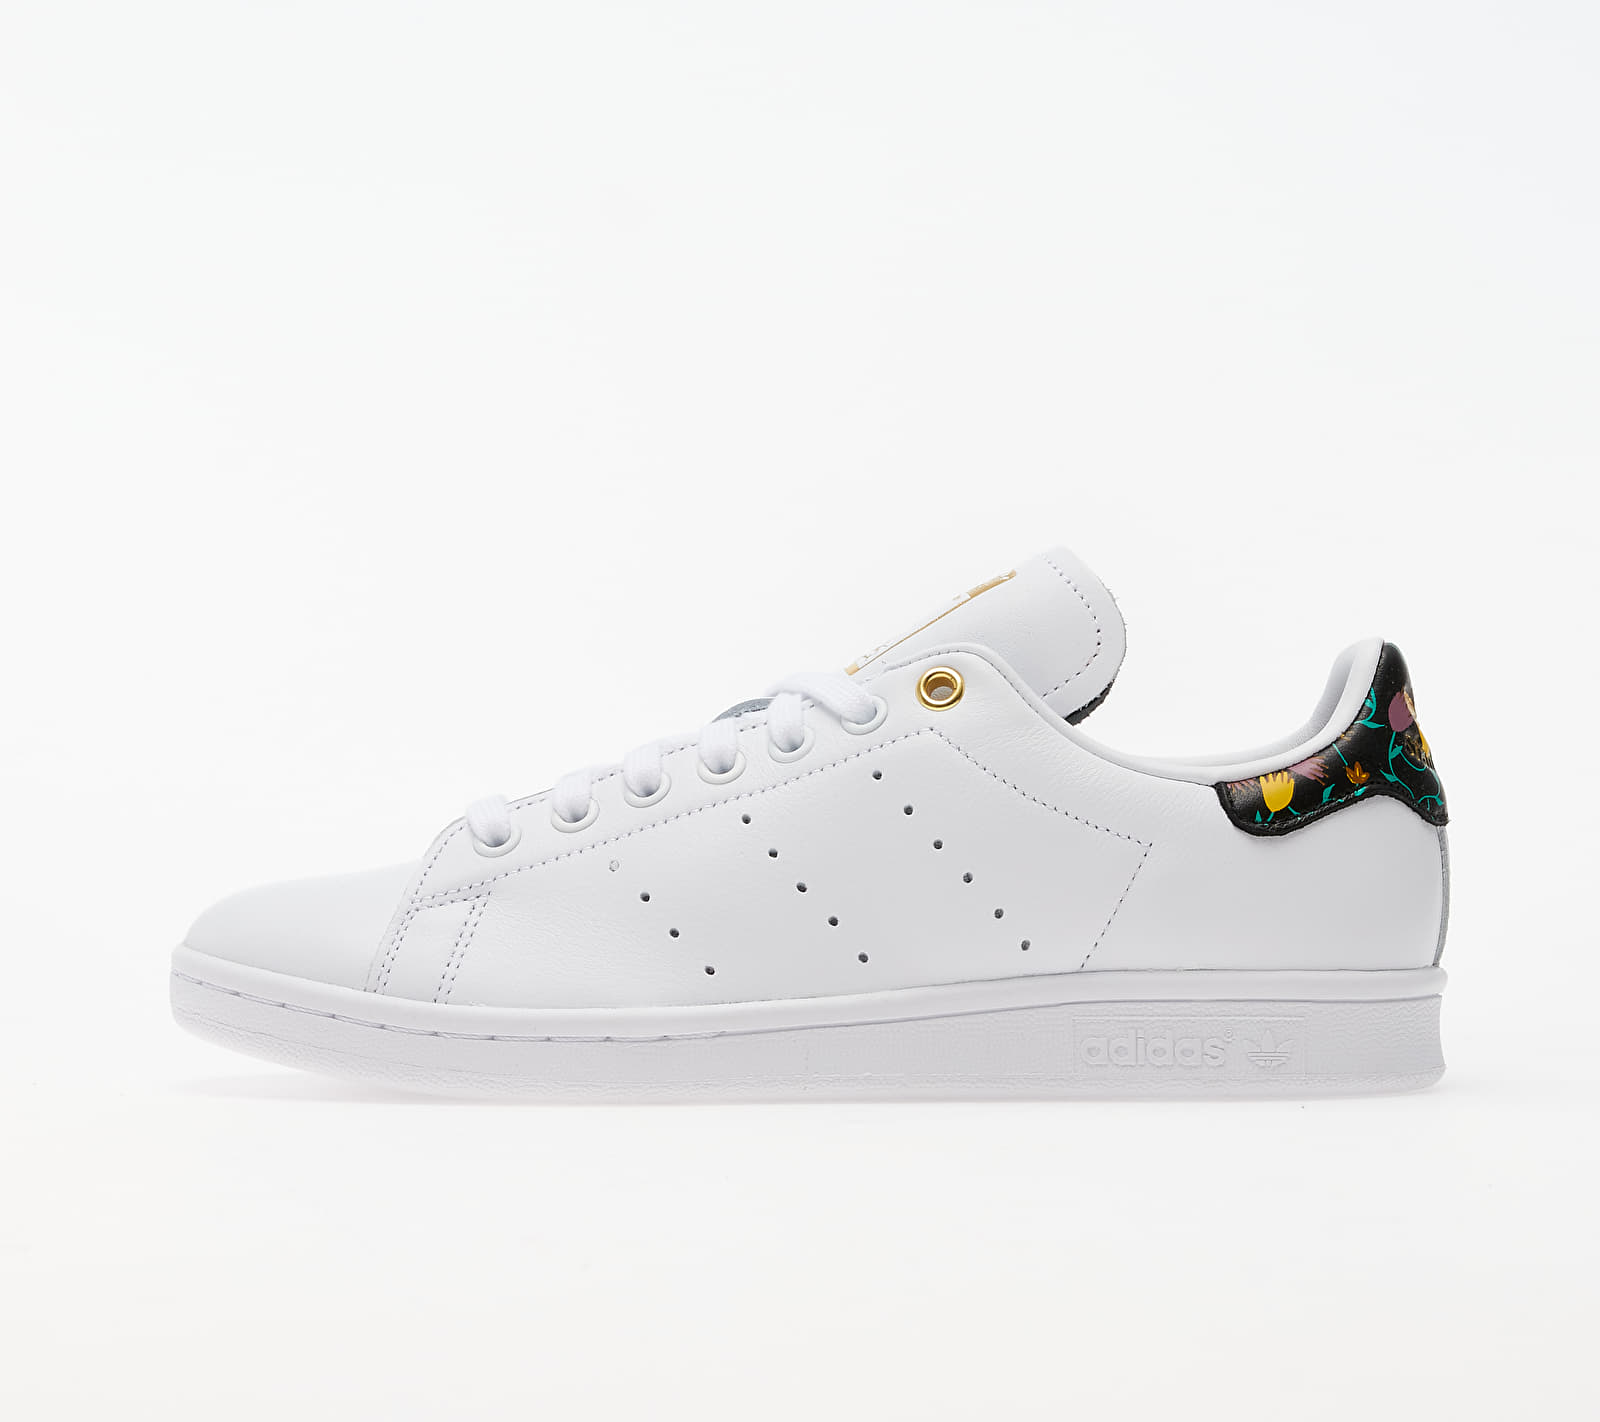 adidas Stan Smith W Ftw White/ Core Black/ Gold Metalic EUR 37 1/3